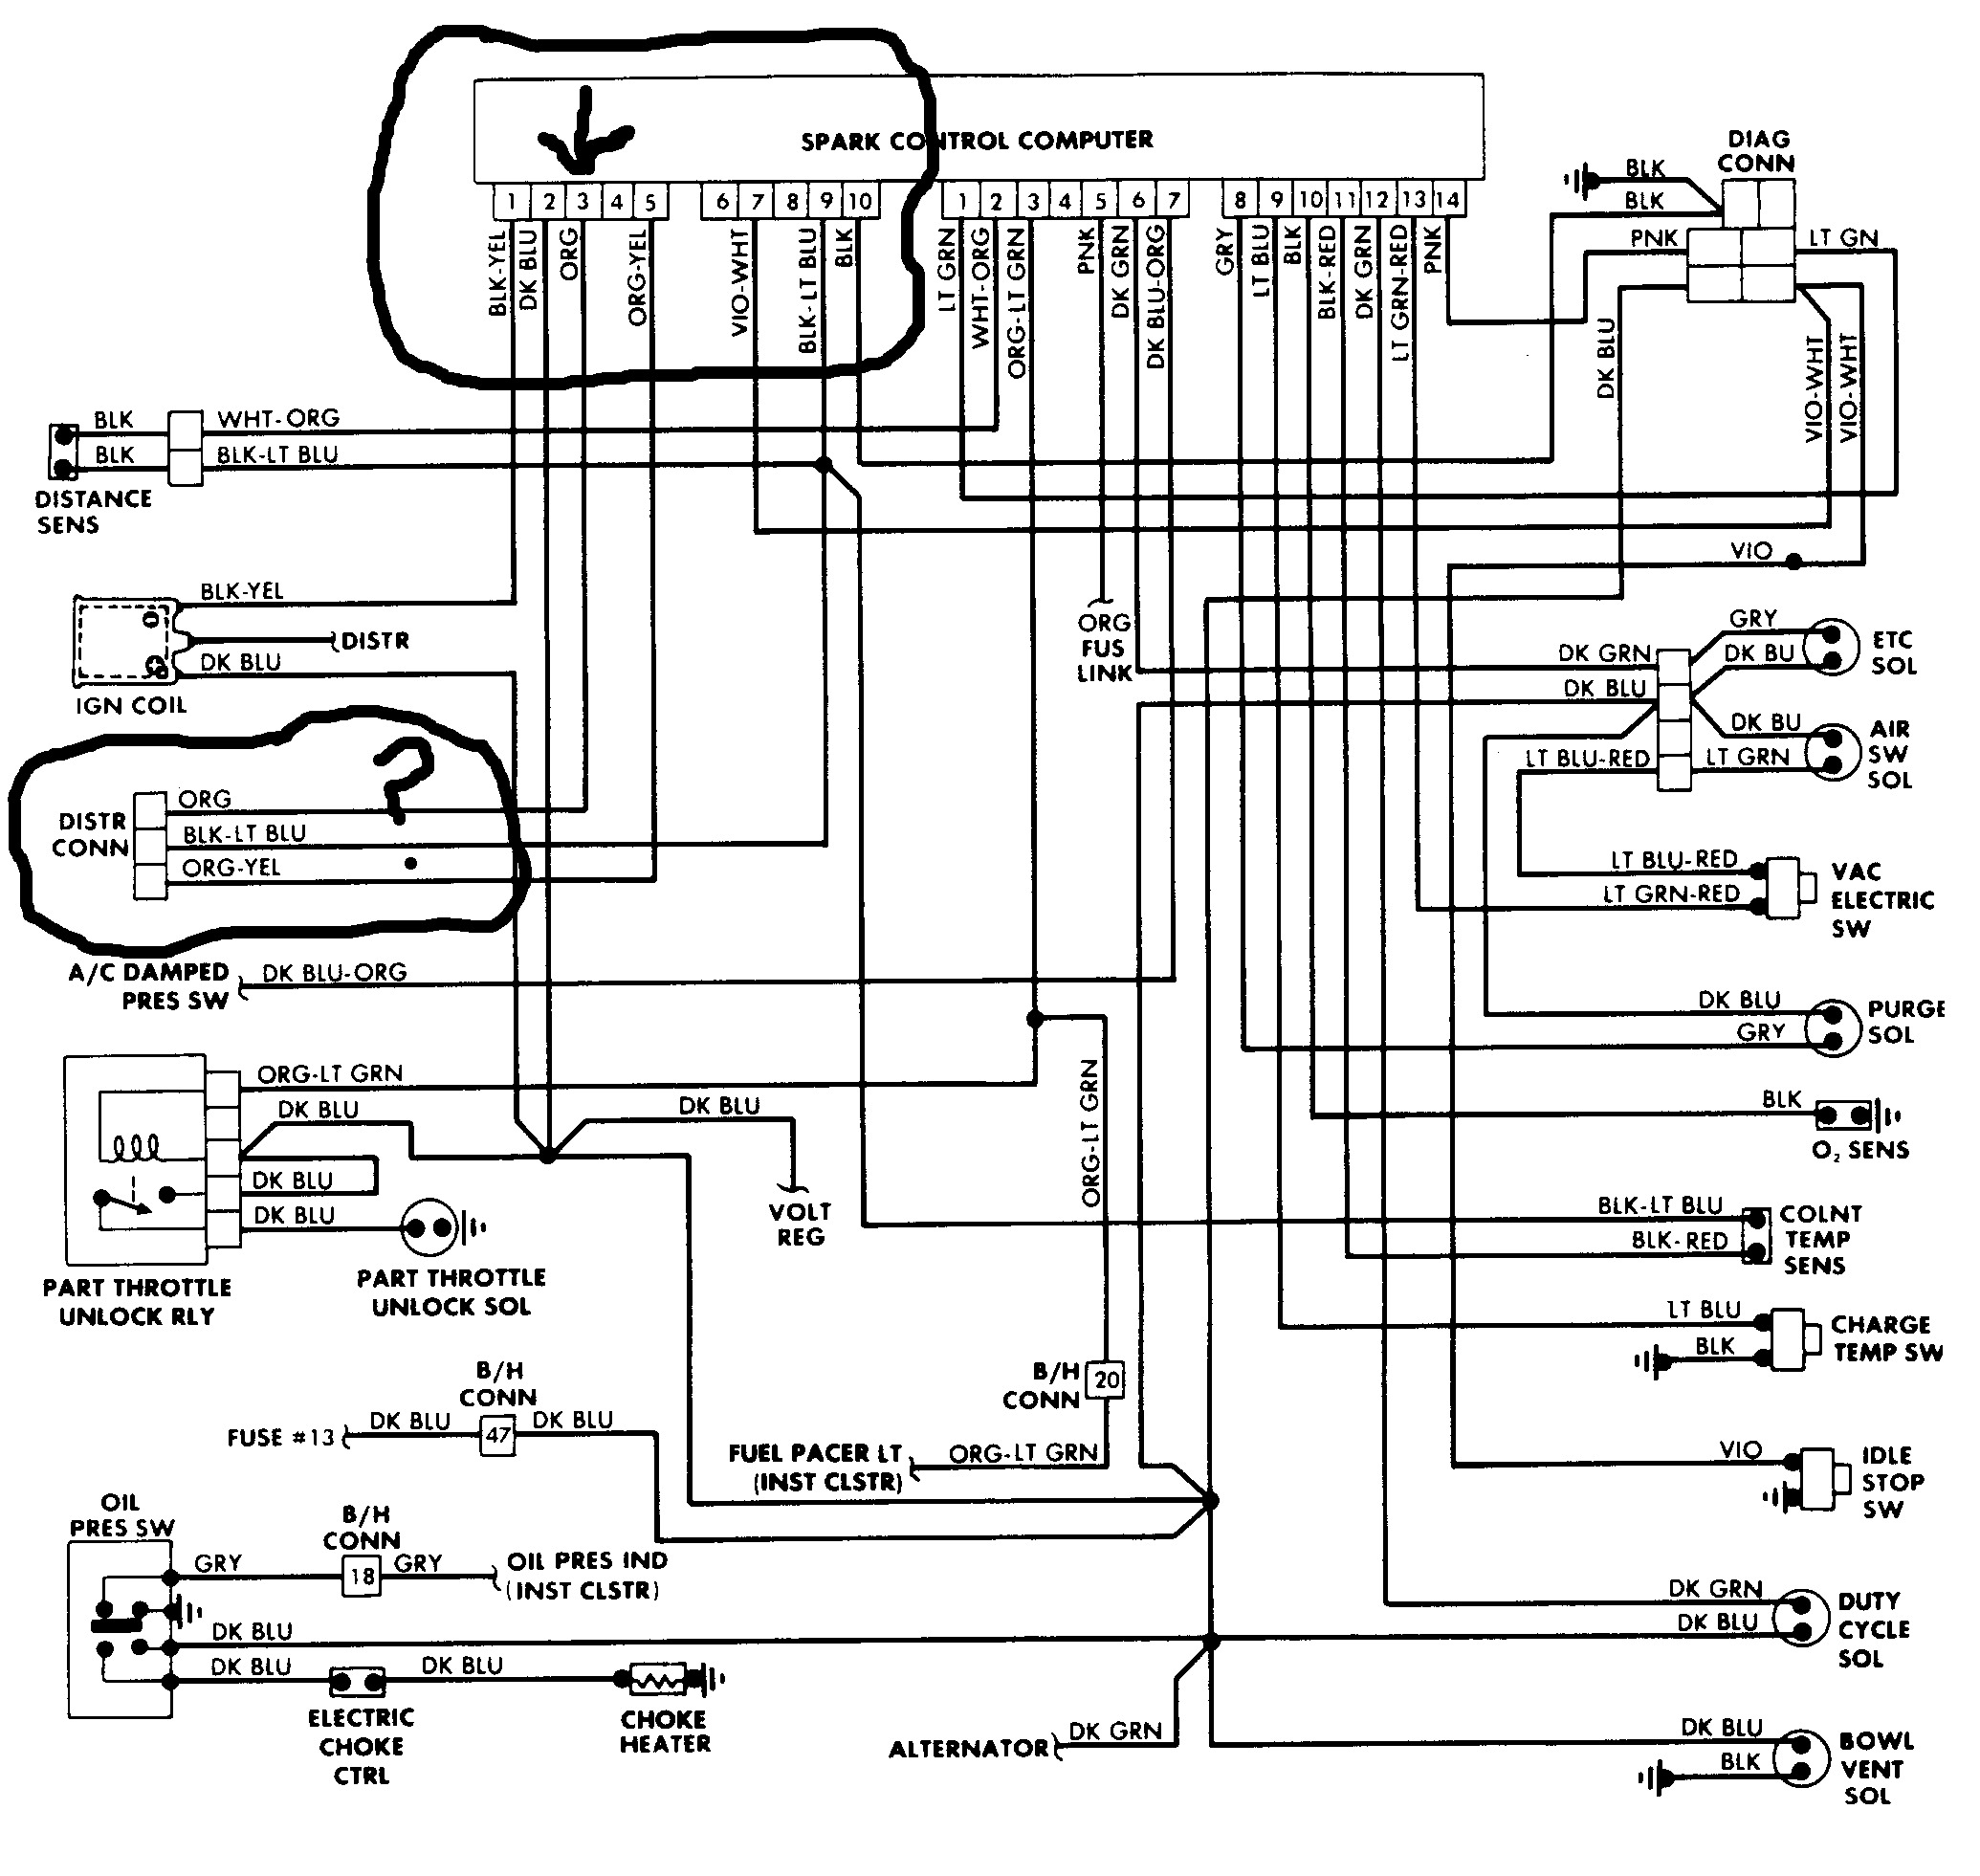 Buick Reatta Fuse Box Diagram. Buick. Wiring Diagram Images